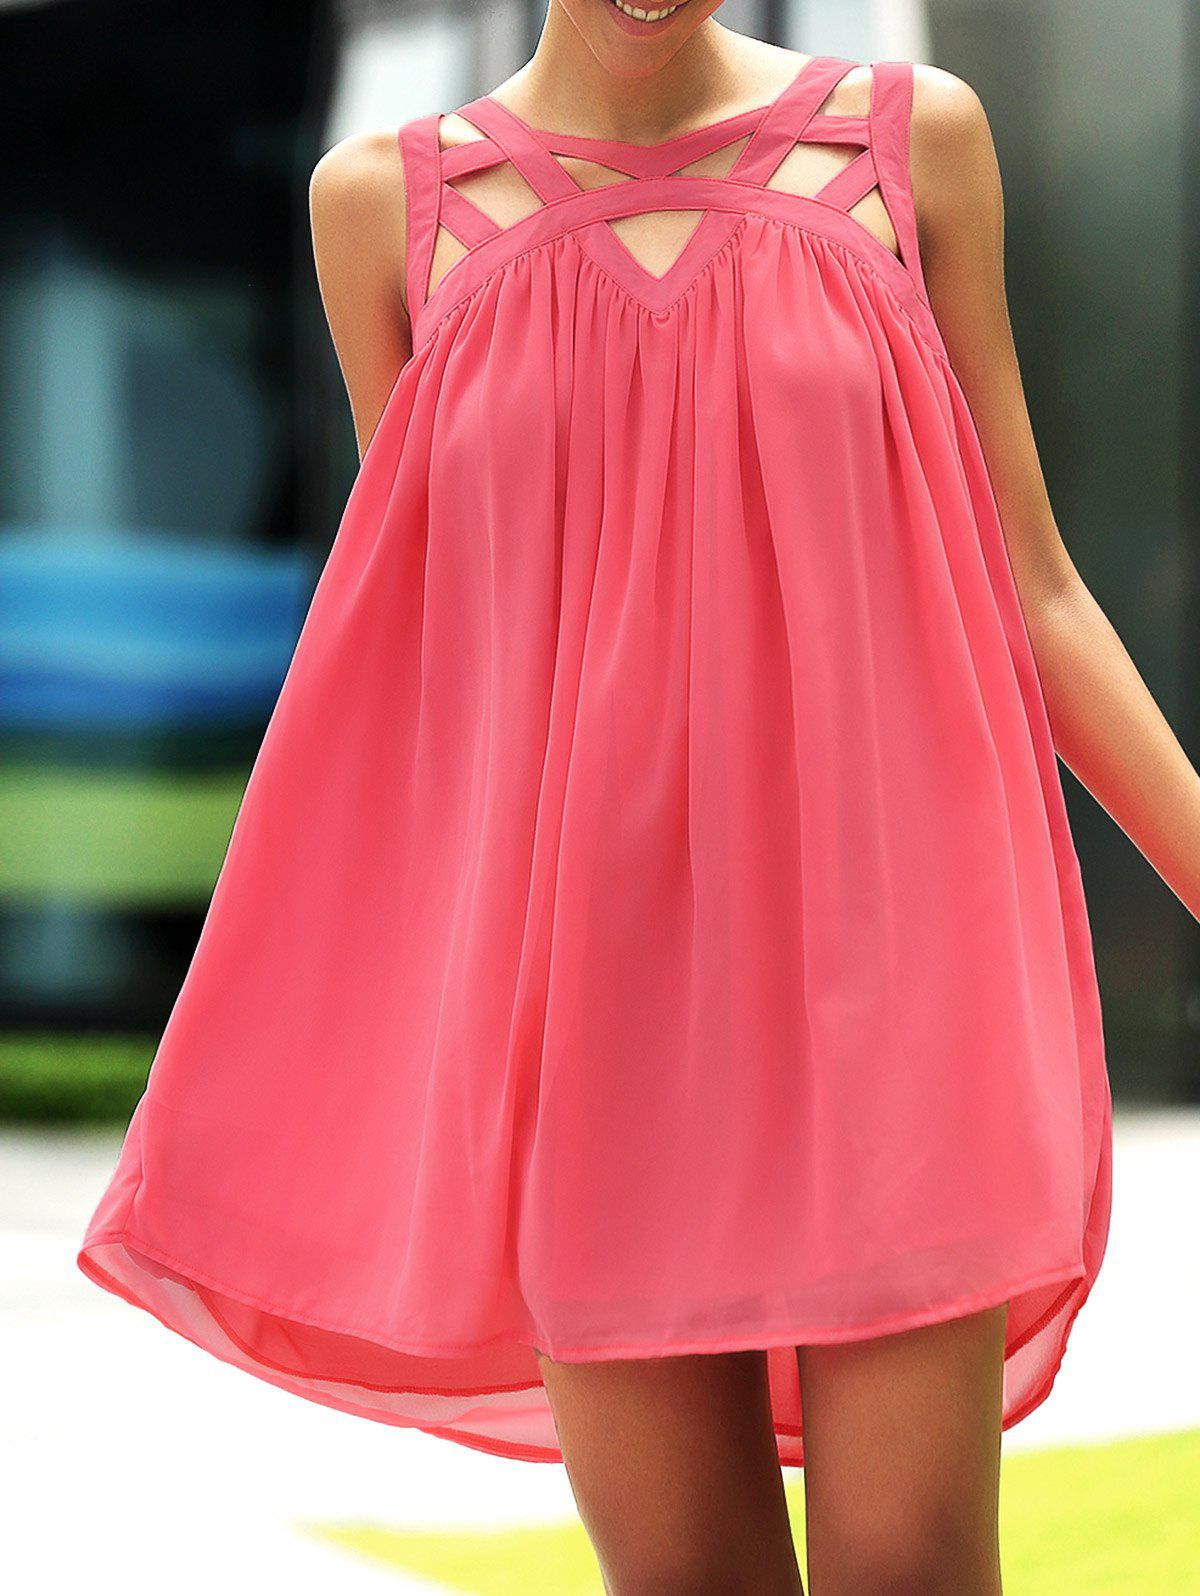 Stylish Round Neck Sleeveless Hollow Out Design Summer Dress For WomenWomen<br><br><br>Size: L<br>Color: WATERMELON RED